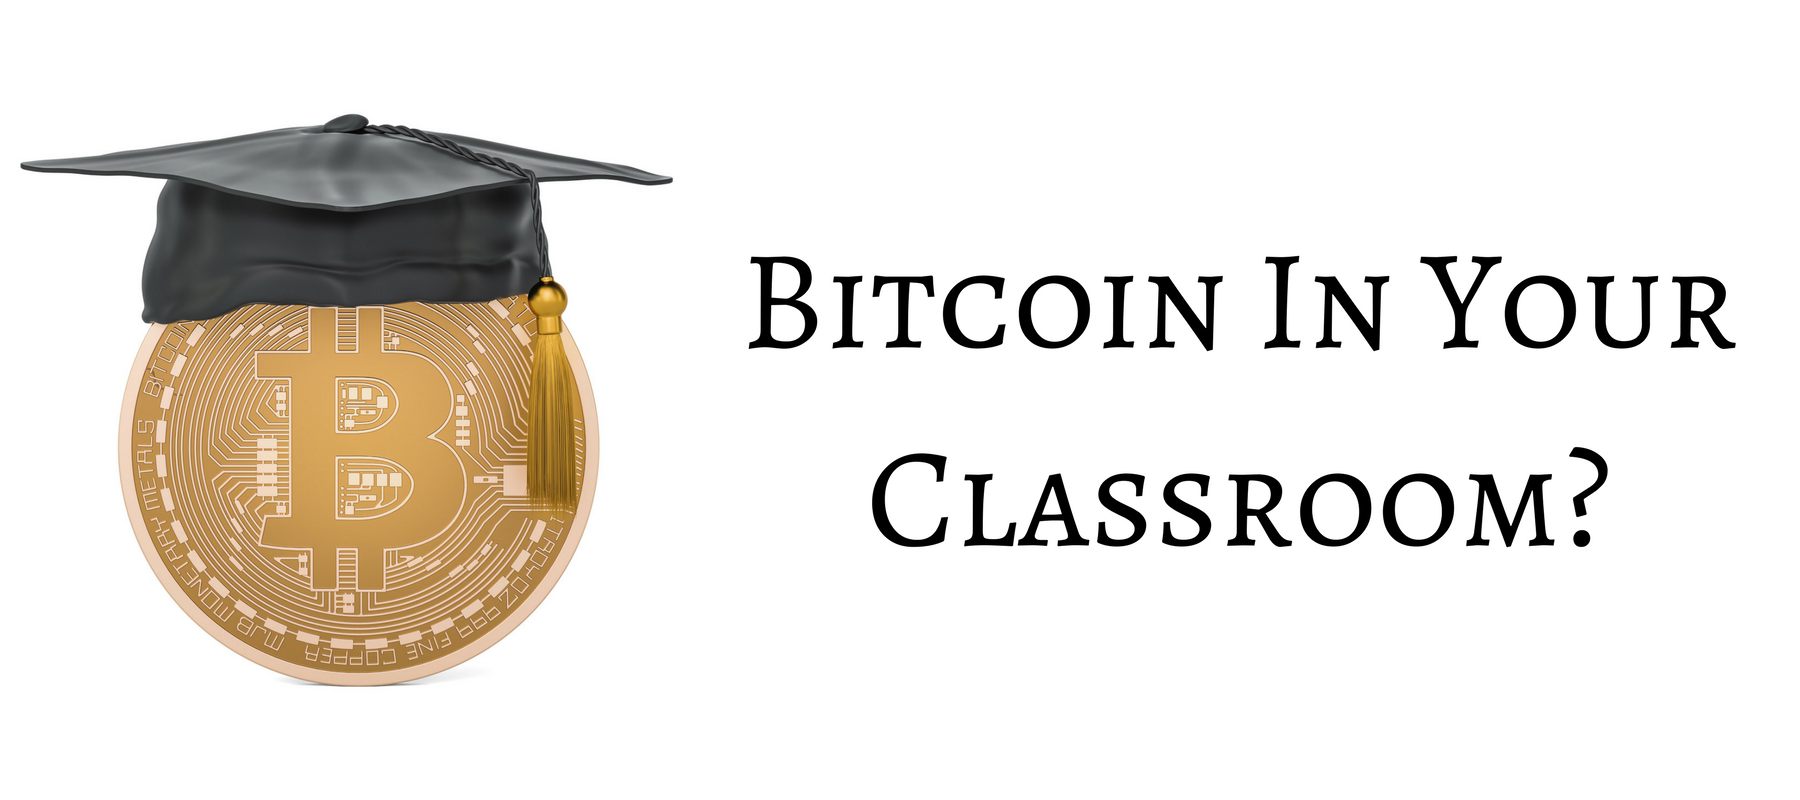 Bitcoin in the classroom